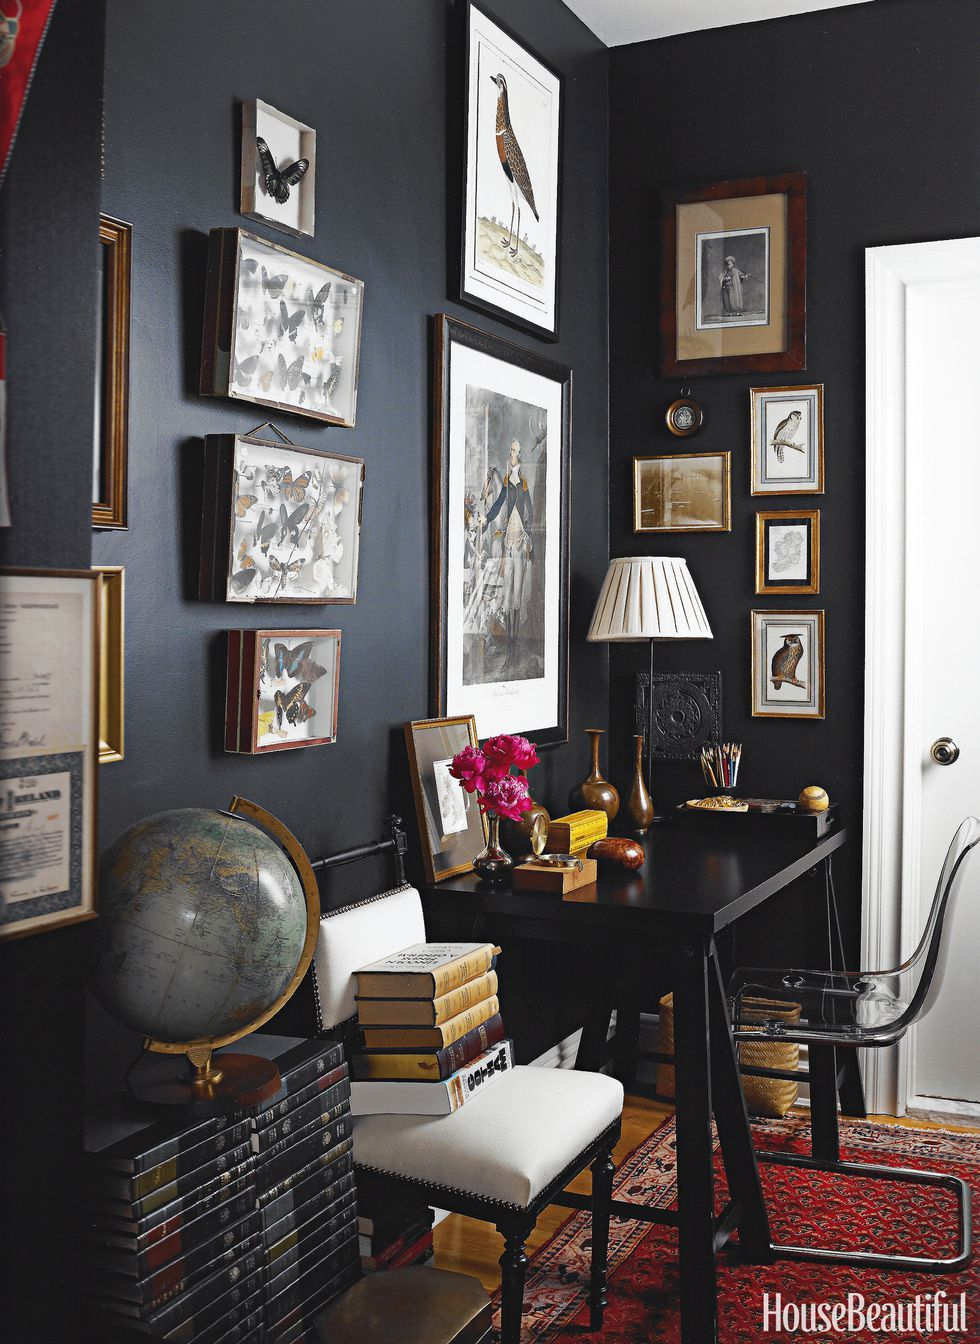 Transformative Wall Decor Ideas You Can Easily Recreate At Home